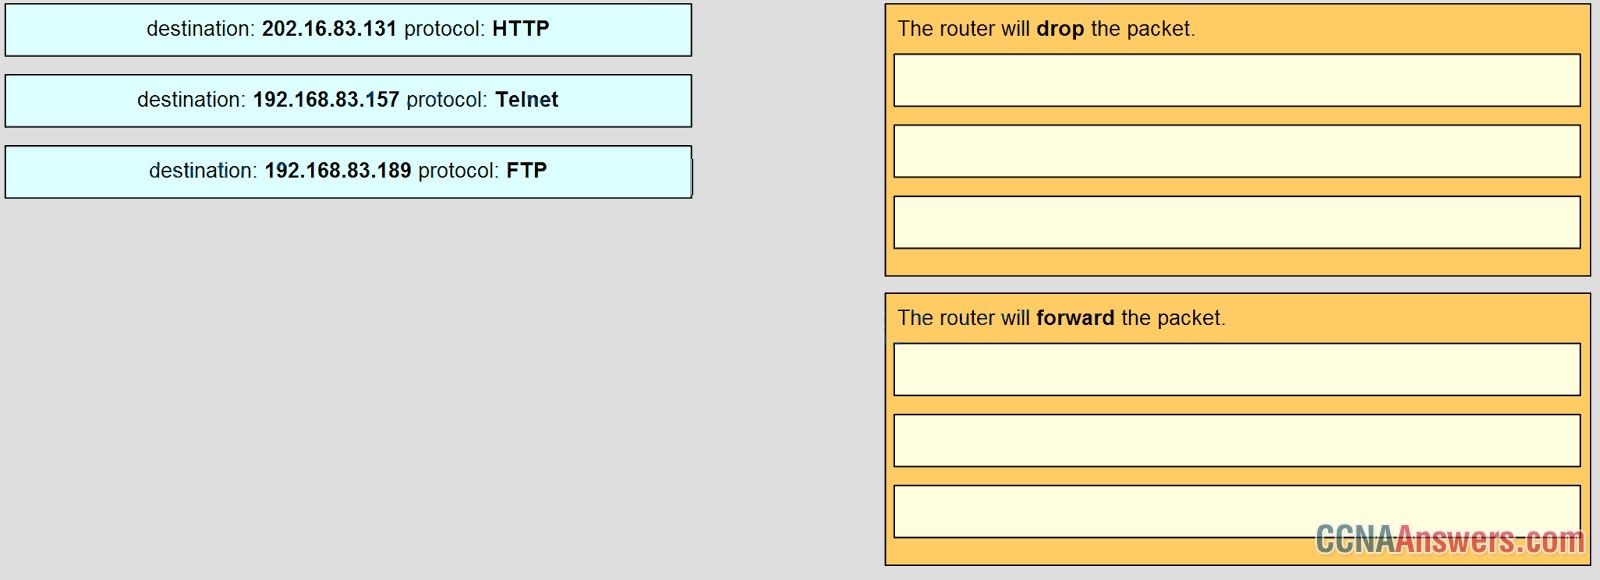 Drag the descriptions of the packets on the left to the action that the router will perform on the right